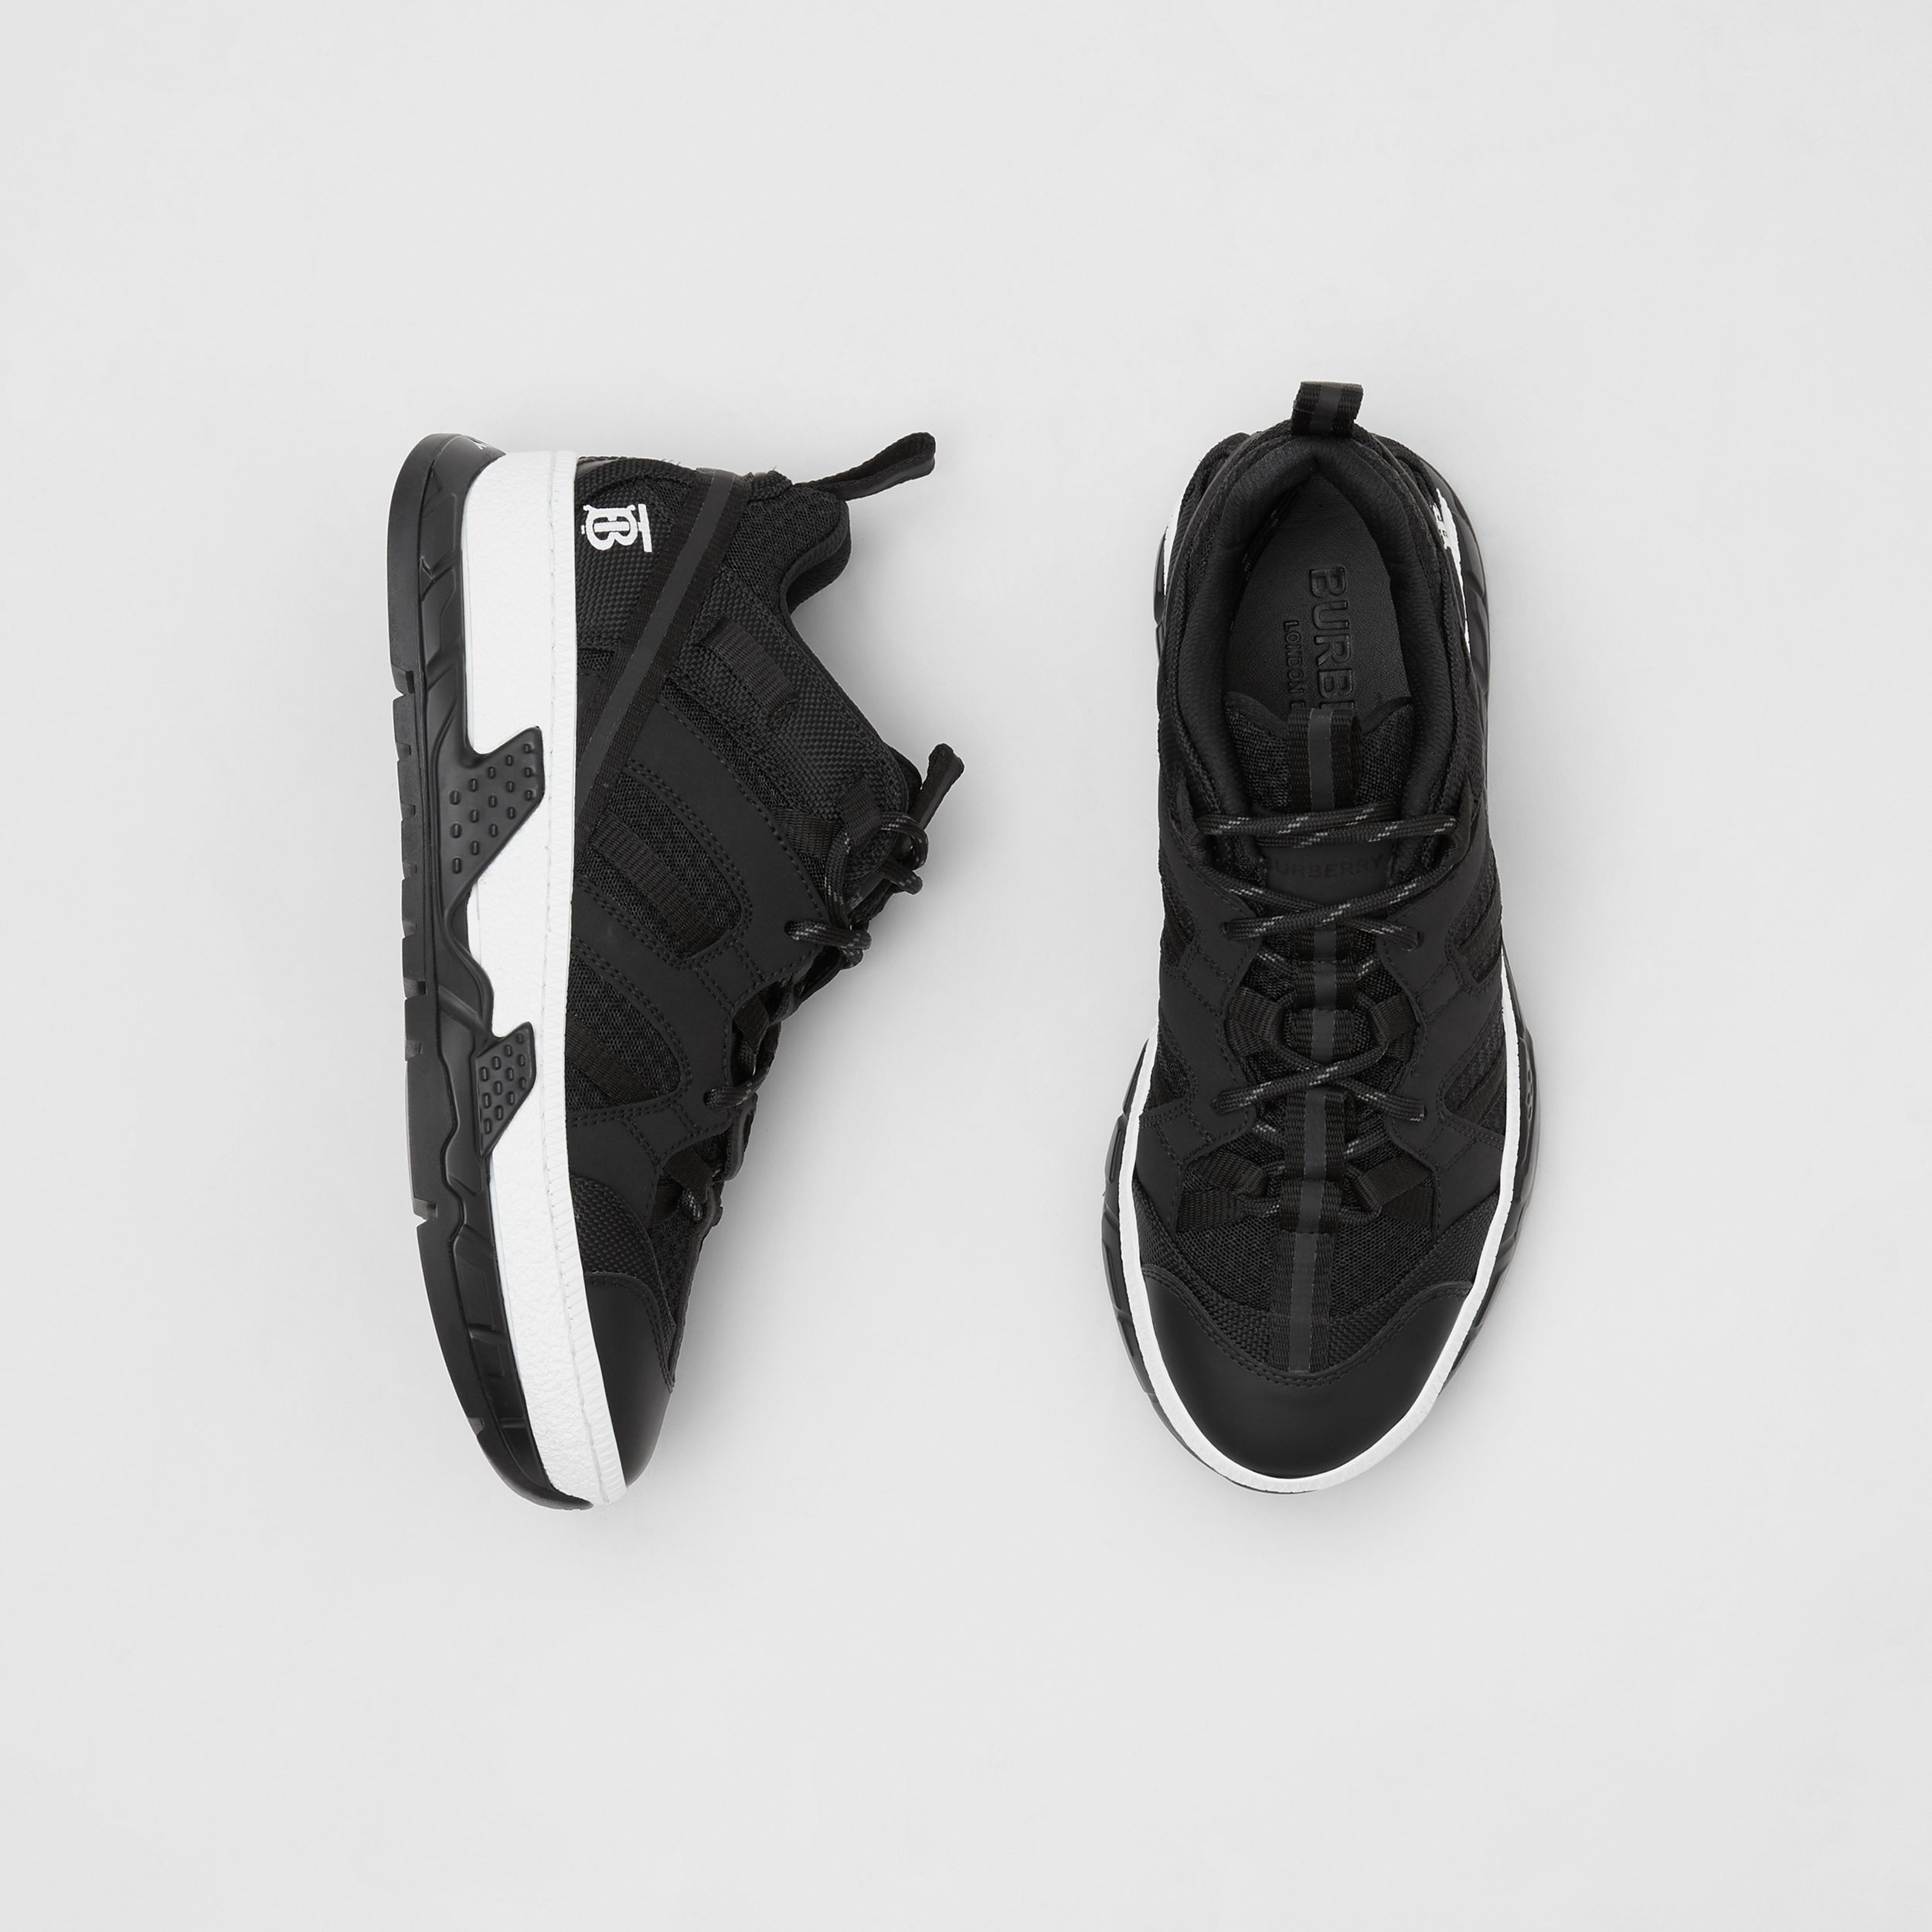 Mesh and Nubuck Union Sneakers in Black - Women | Burberry - 1